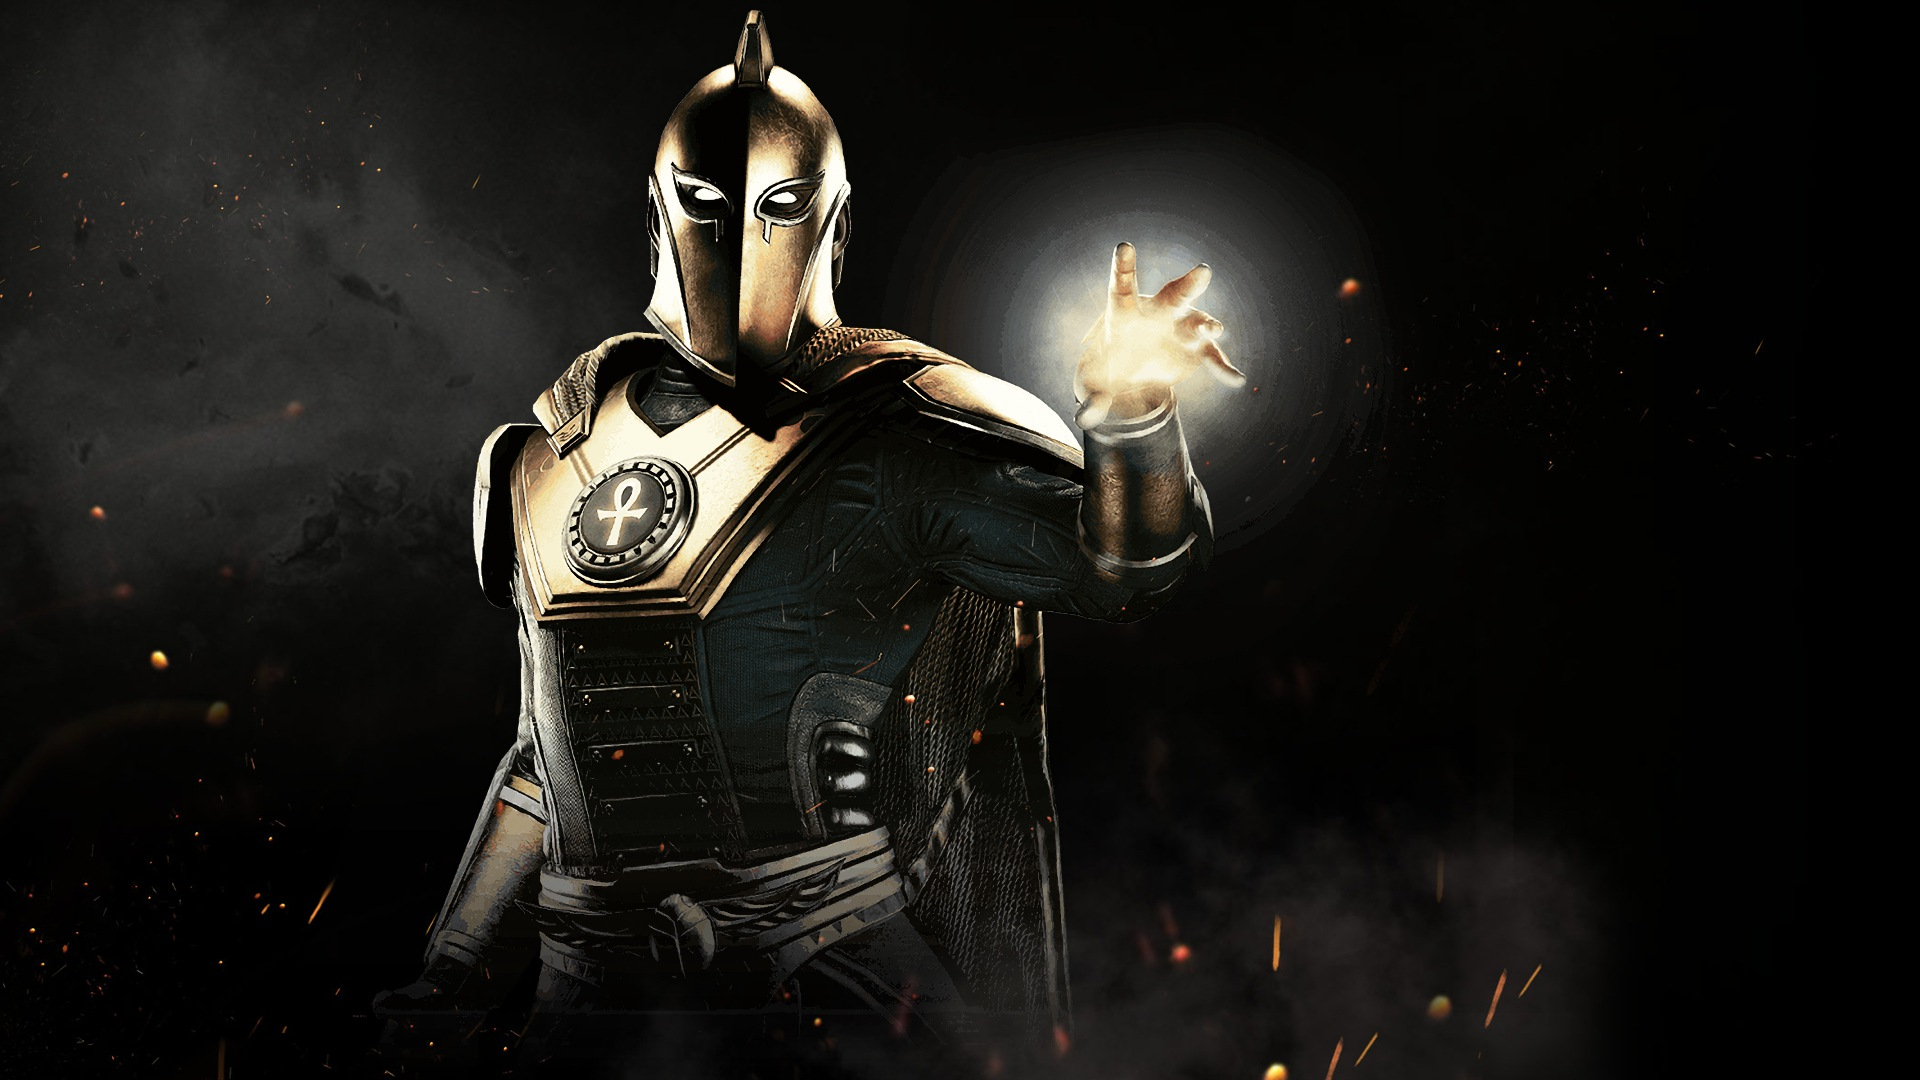 Injustice 2 Video Game UHD Forge 1920x1080